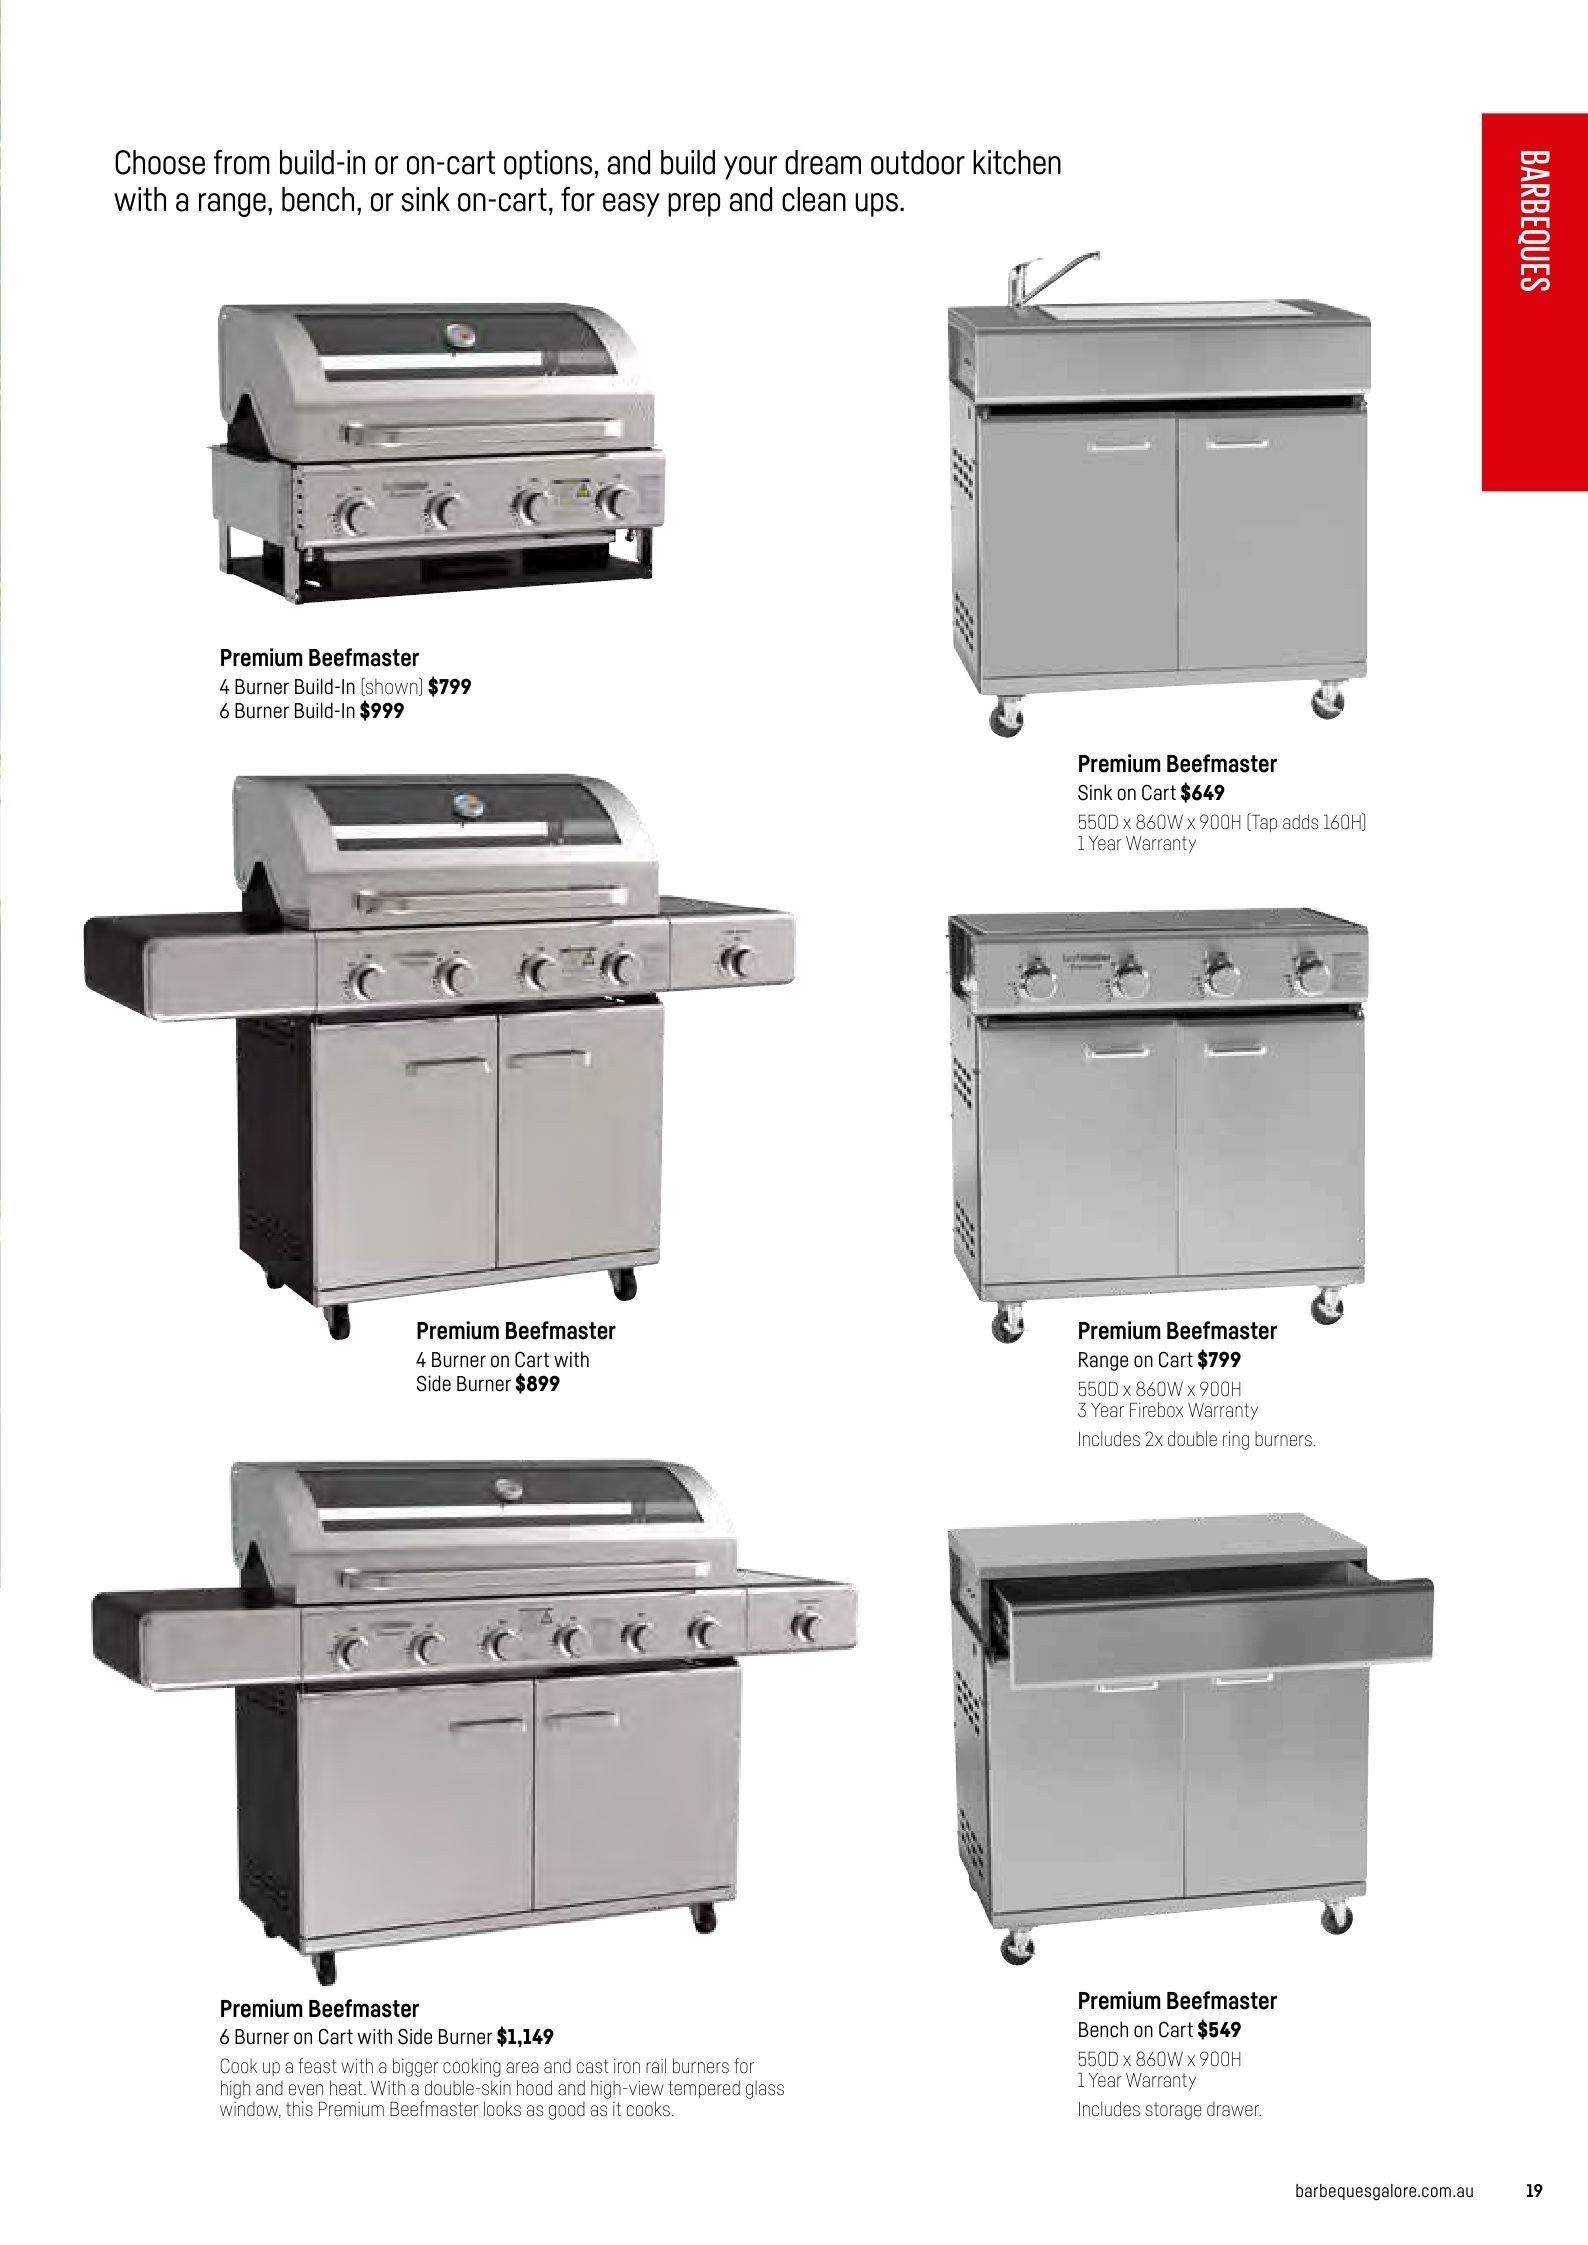 Barbeques galore catalogue sales products bench cart drawer rail ring